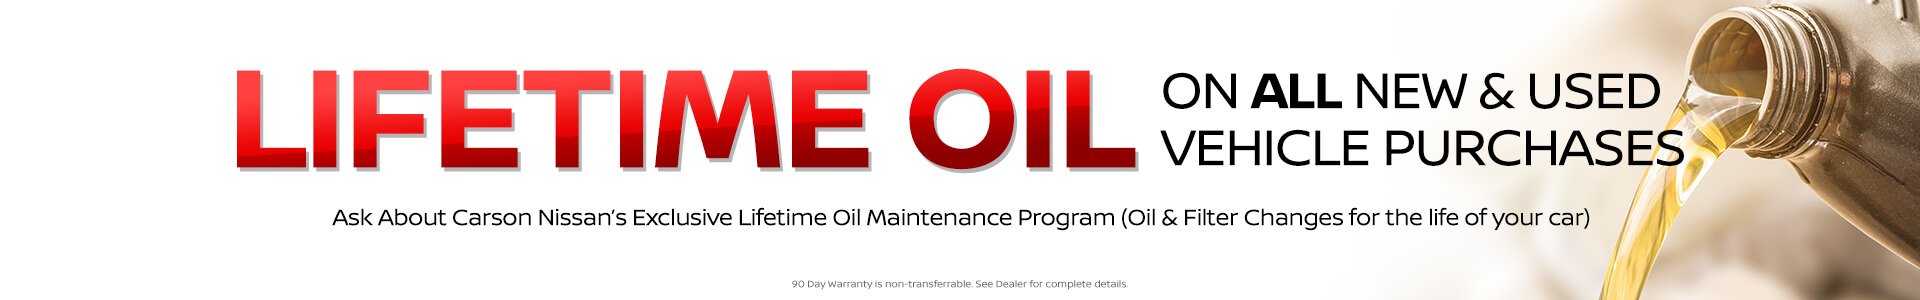 Lifetime Oil